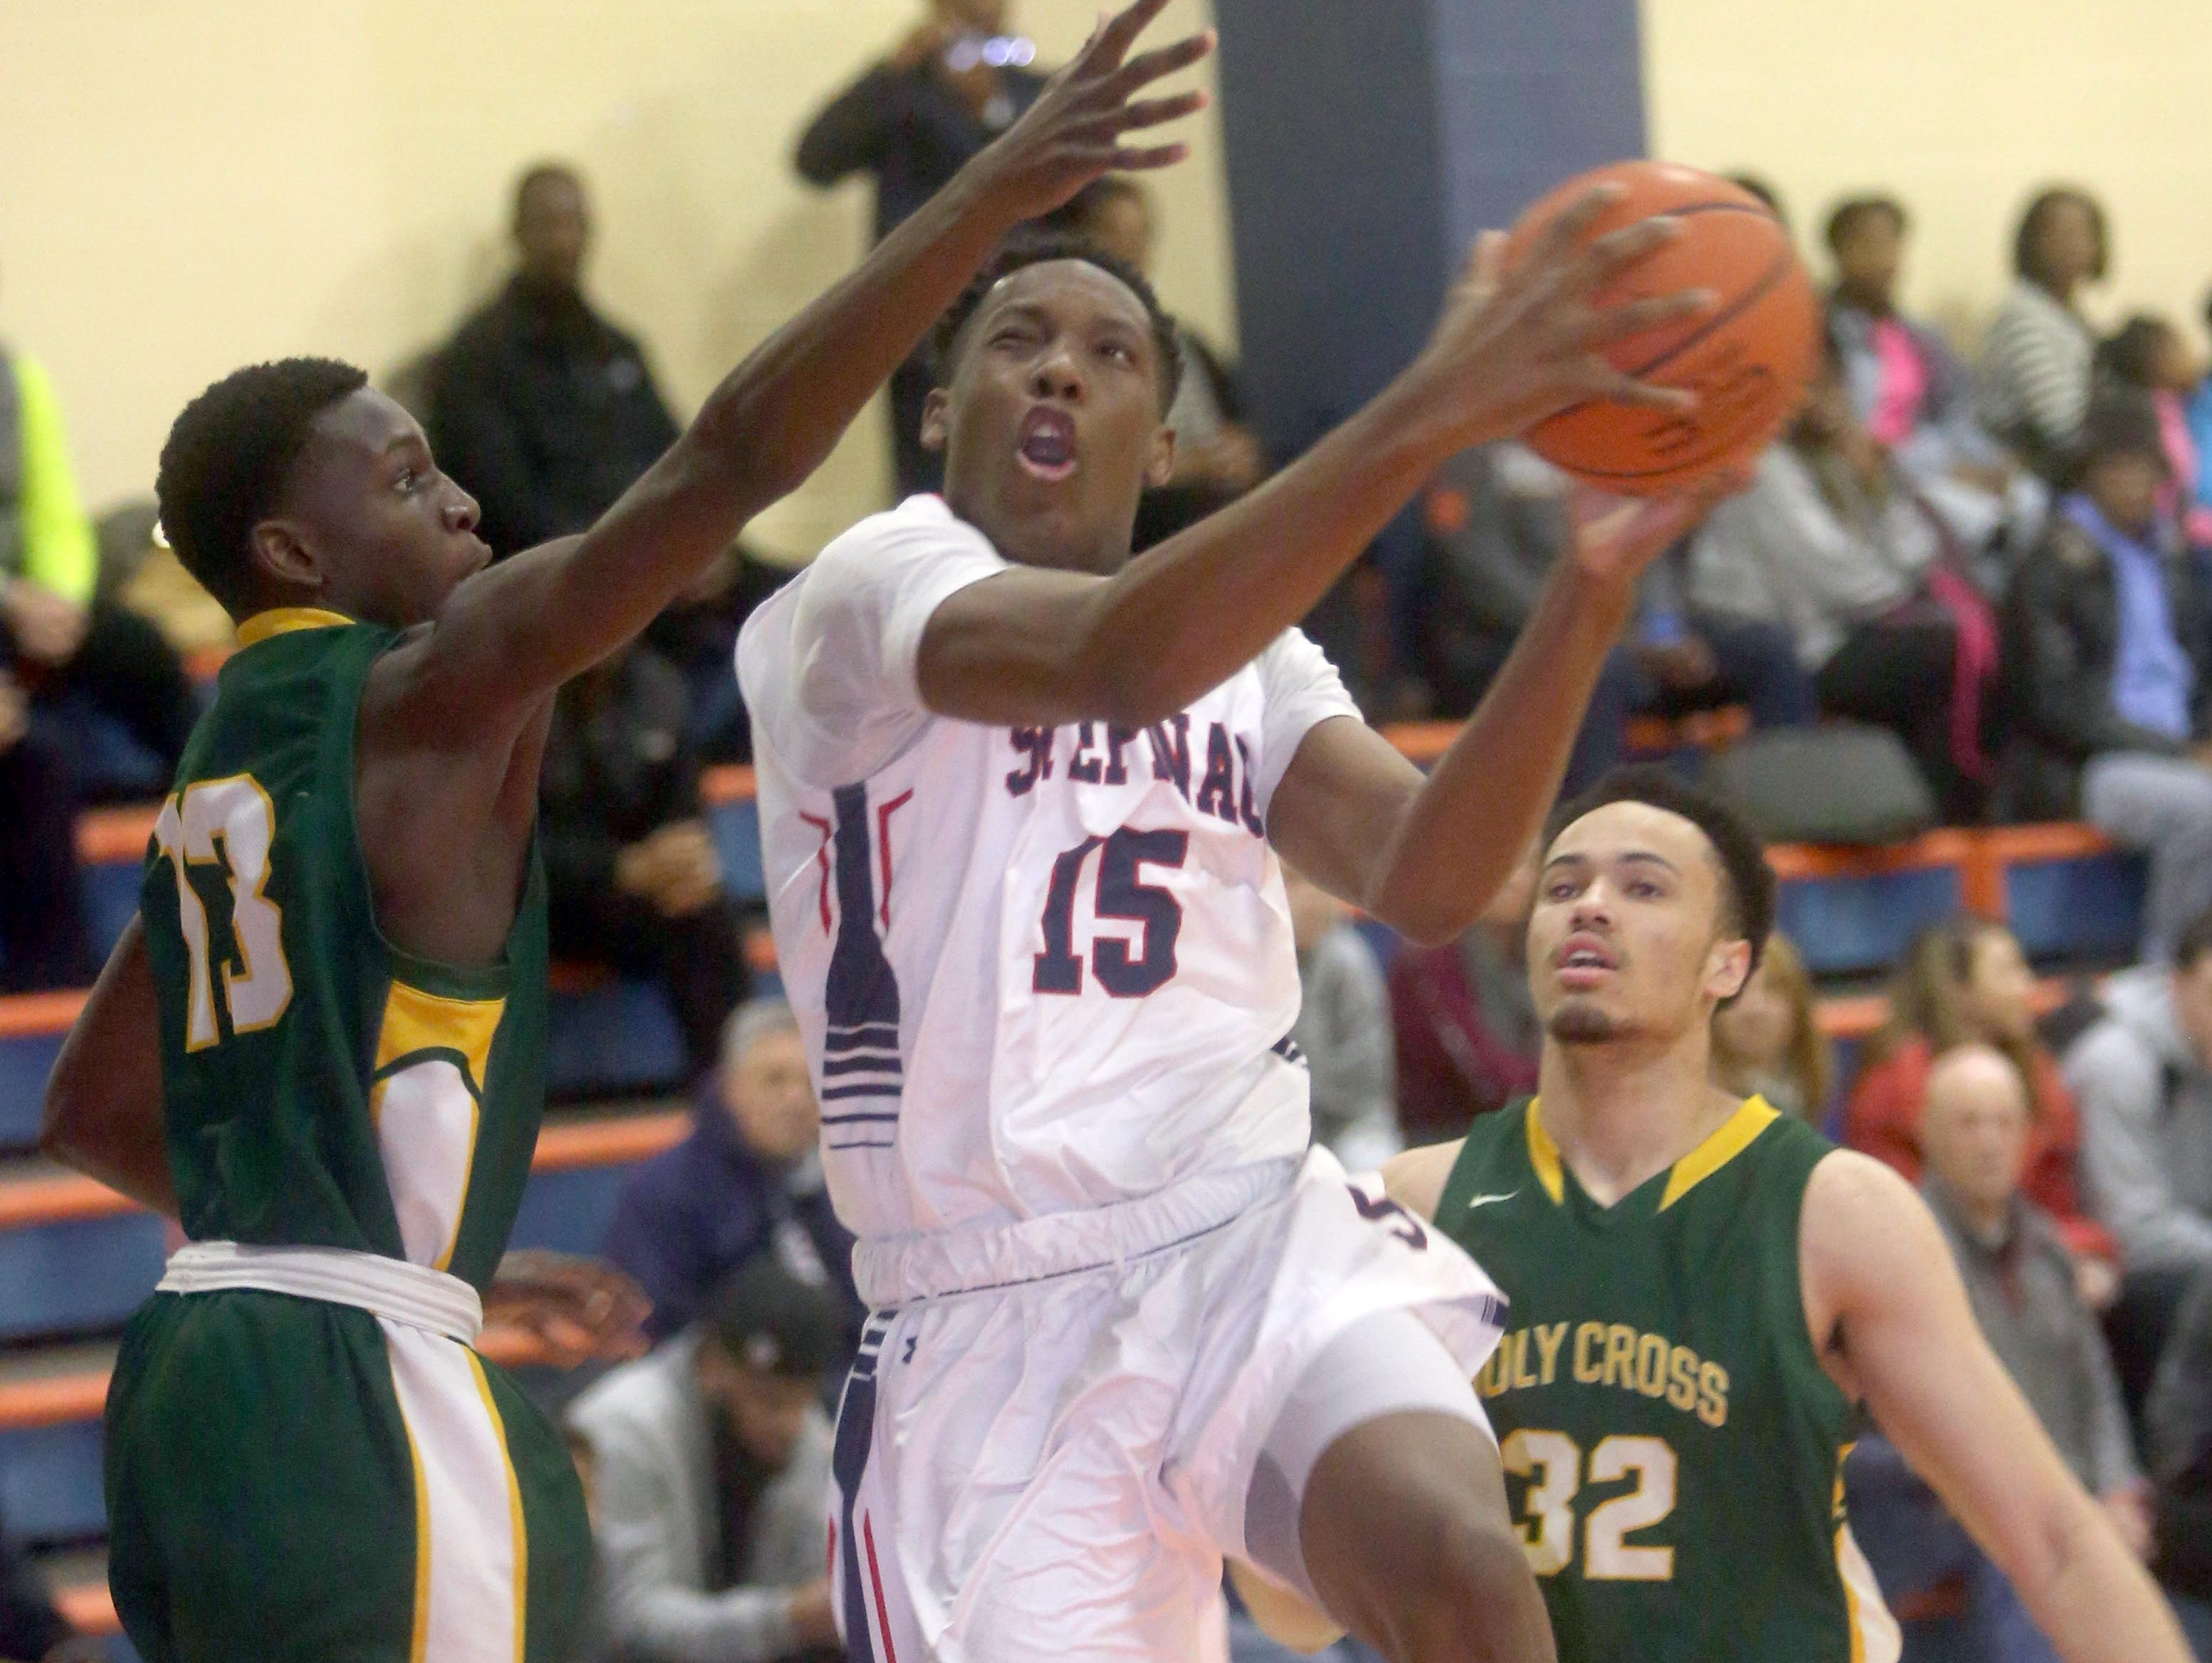 Stepinac's Aundre Hyatt splits Holy Cross defenders during a CHSAA second round AA playoff basketball game against St. Peter's at St. Raymond High School in the Bronx March 3, 2016.